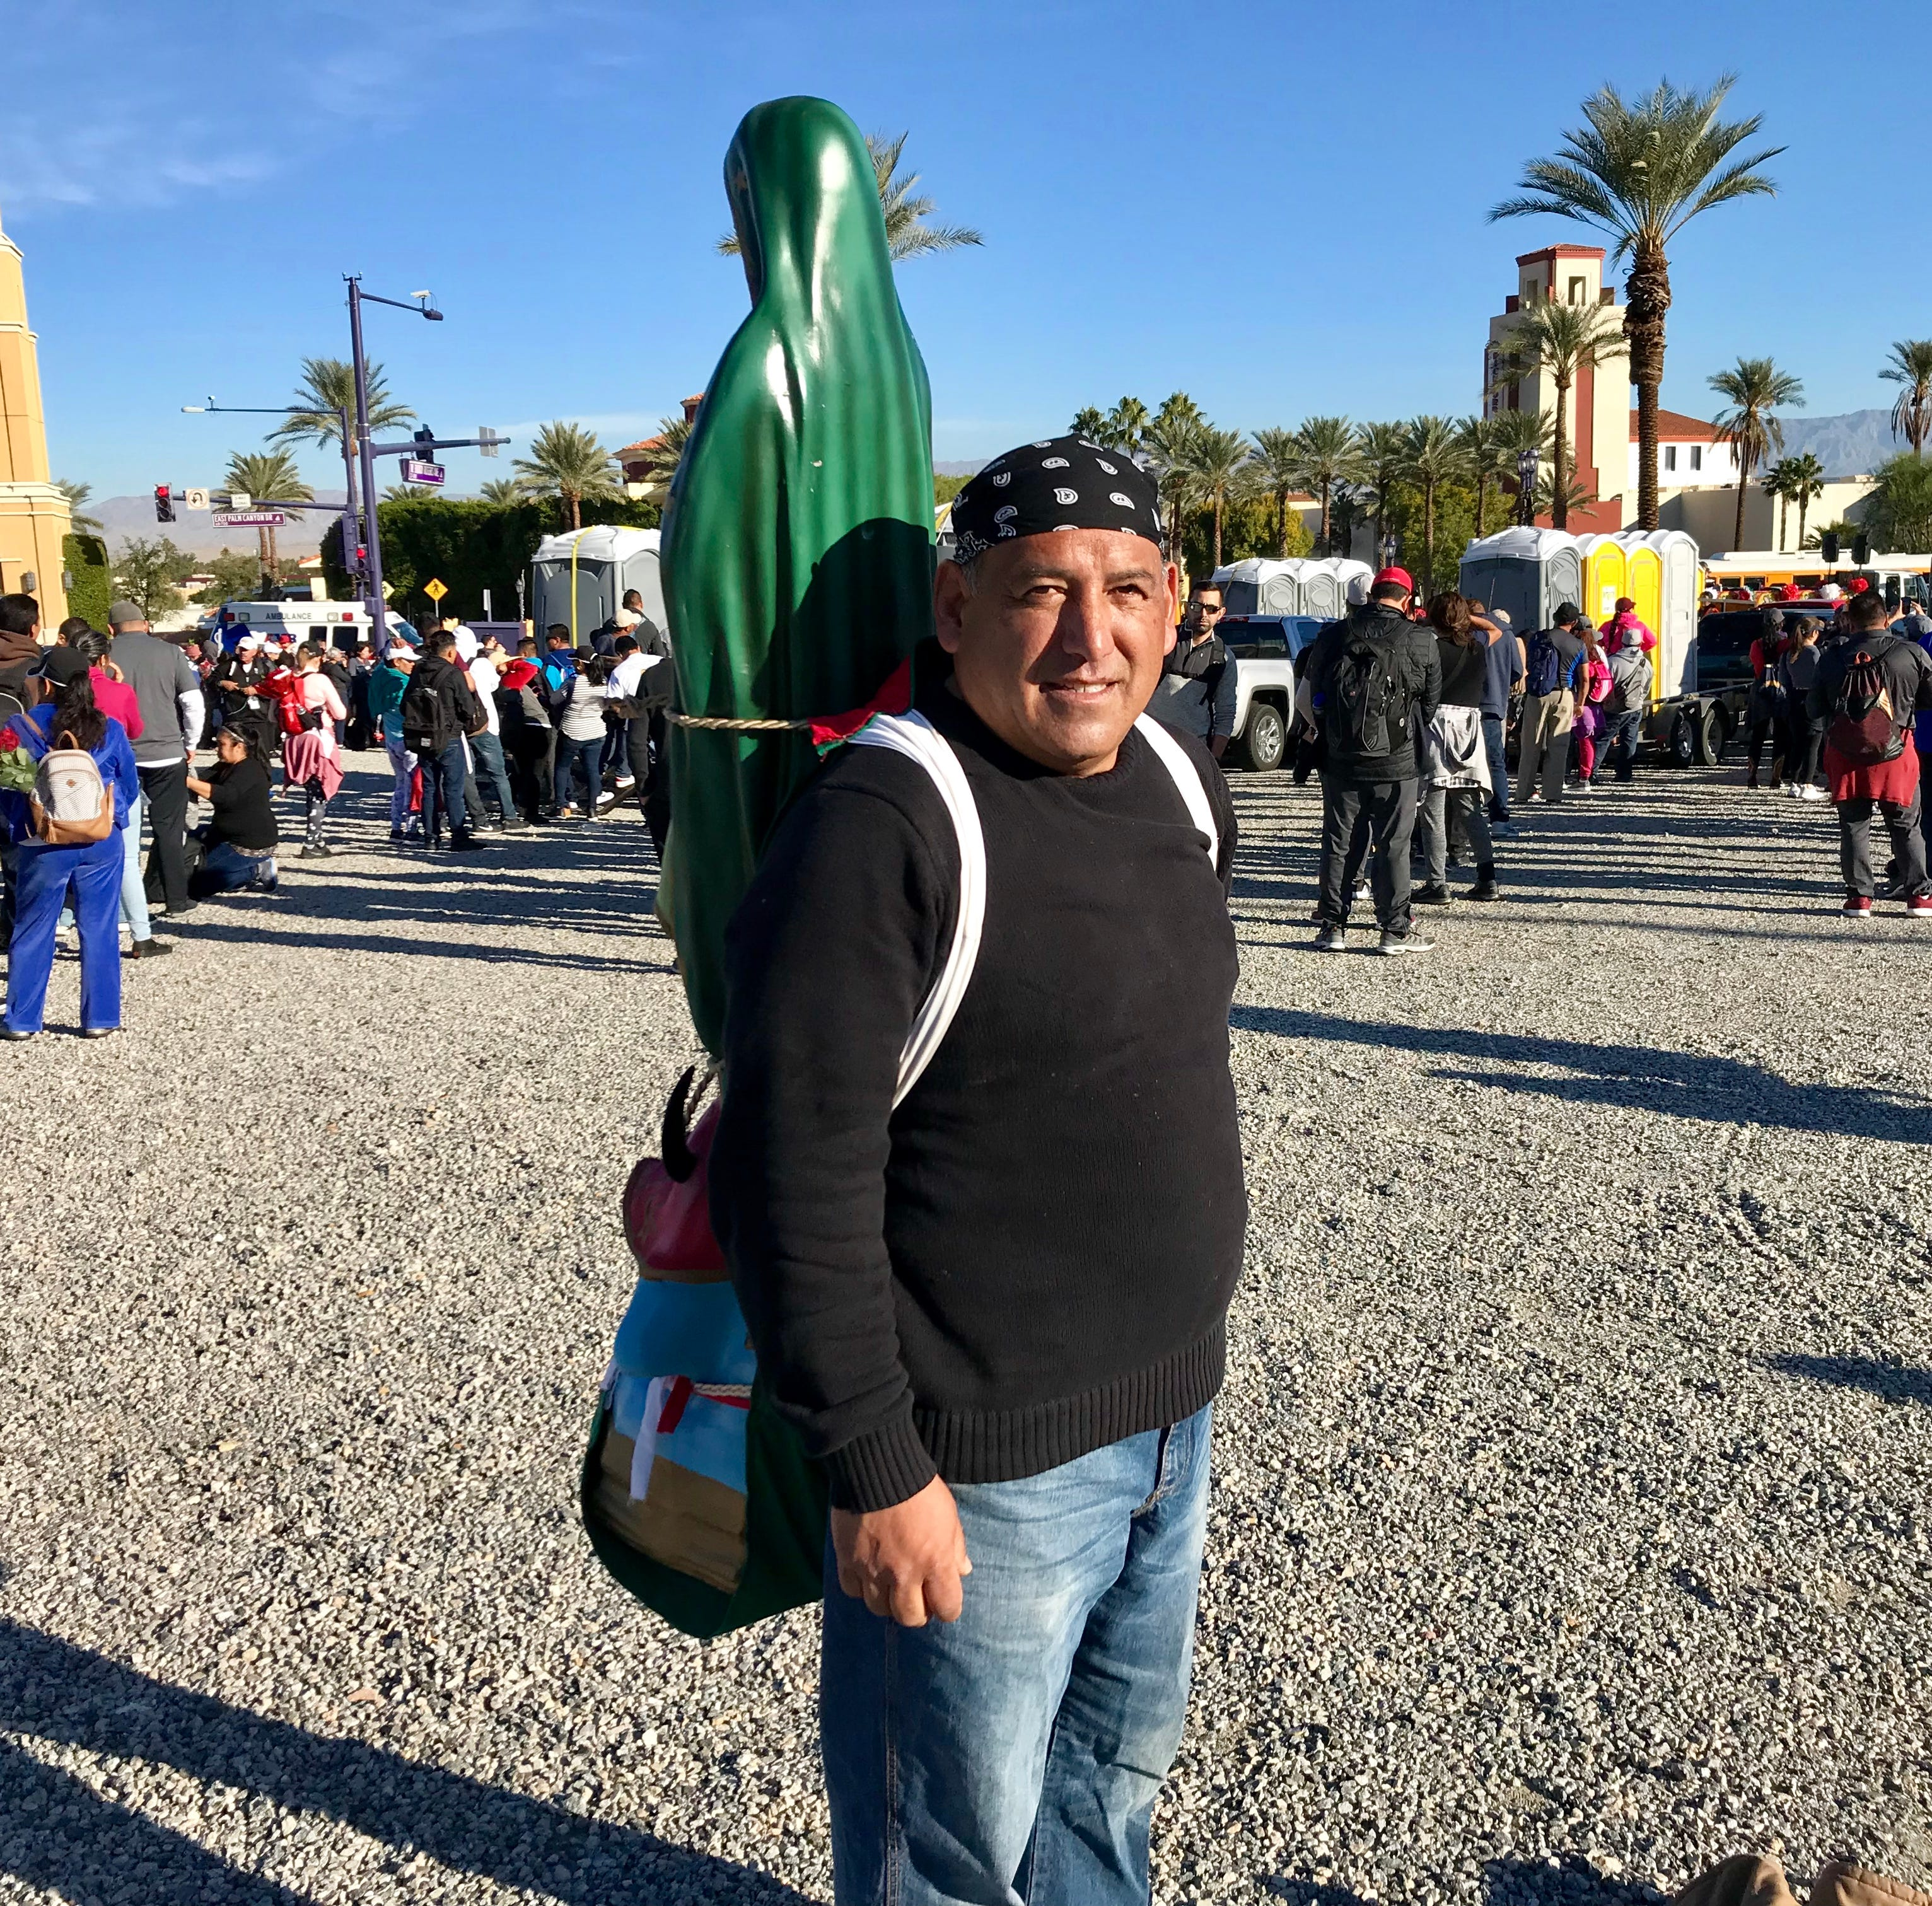 Valley Catholics display their devotion with Virgen de Guadalupe pilgrimage, longest in U.S.